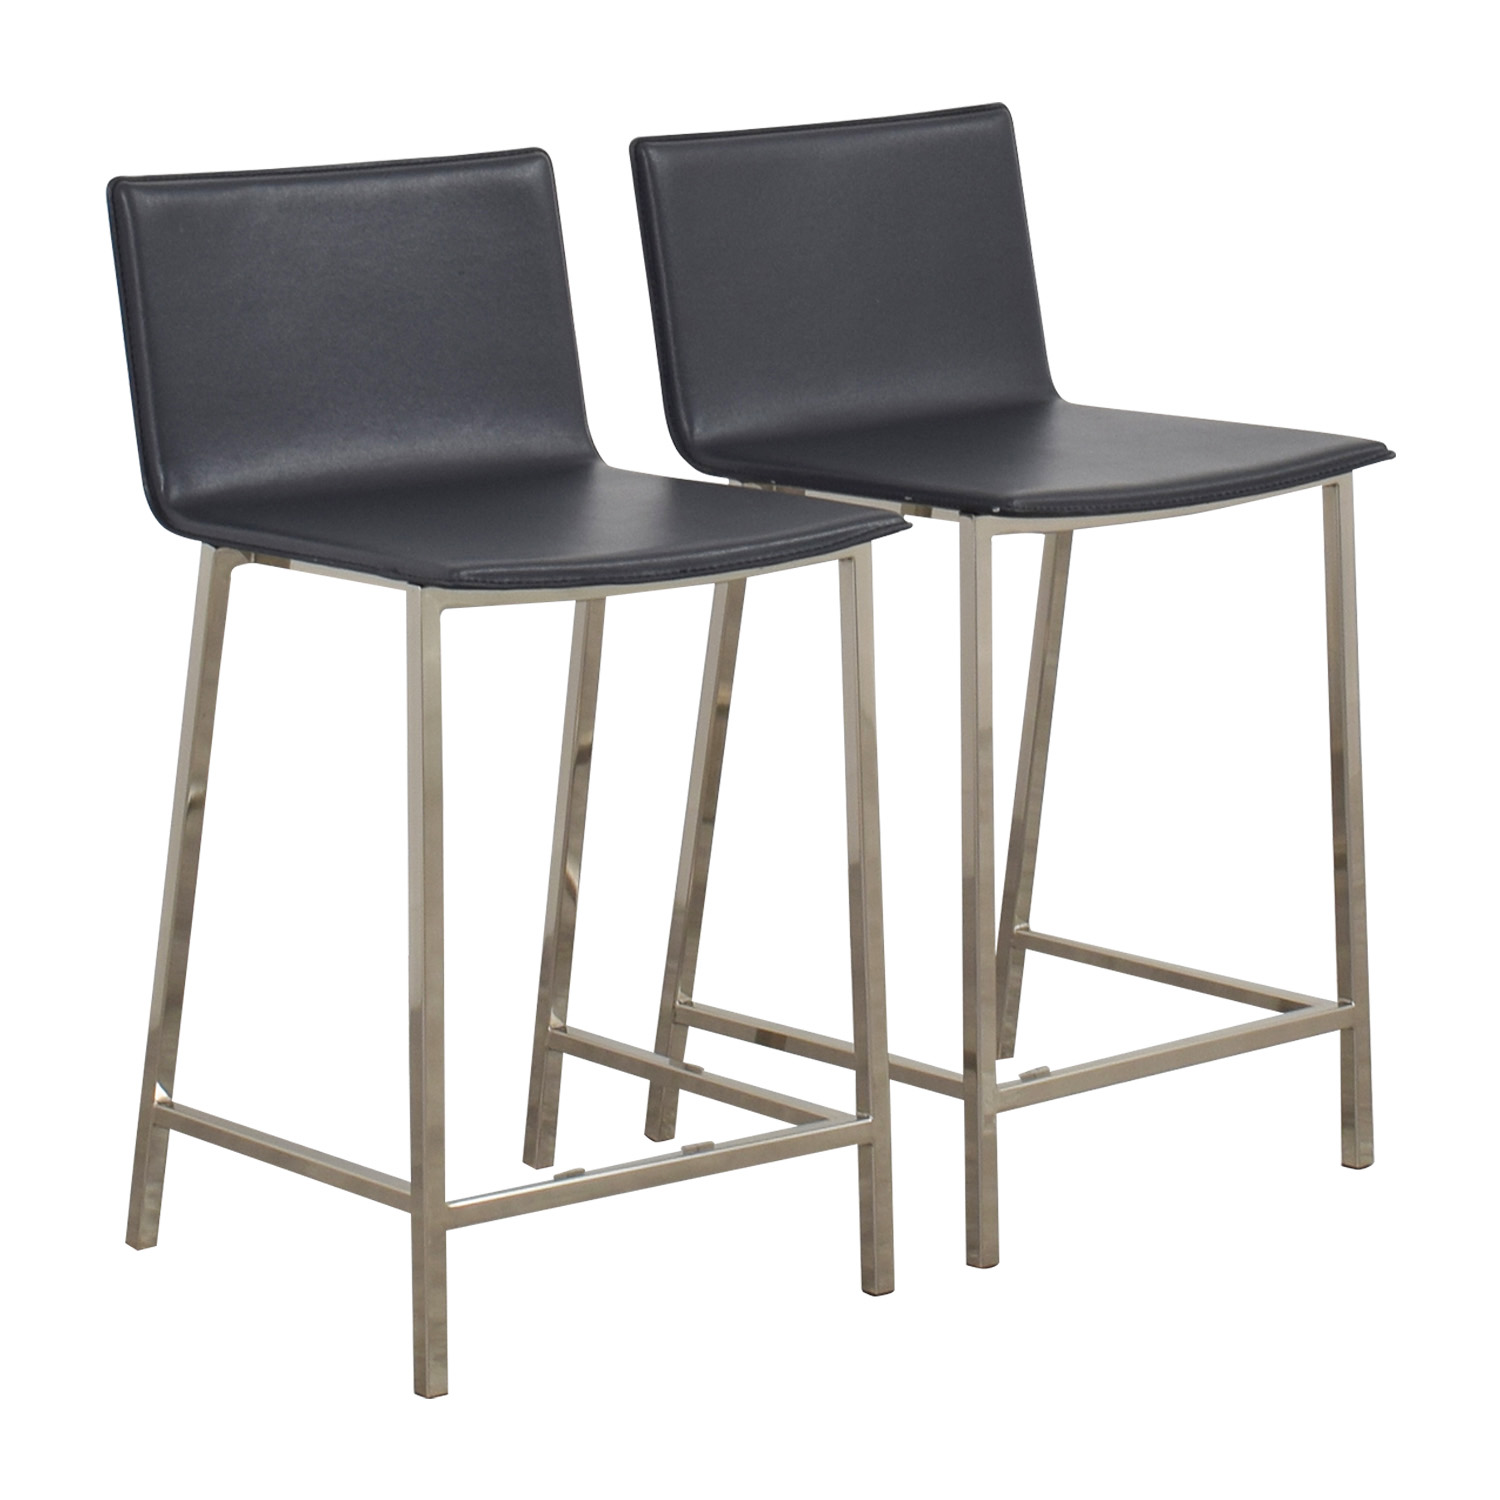 shop CB2 CB2 Grey Leather Bar Stools online